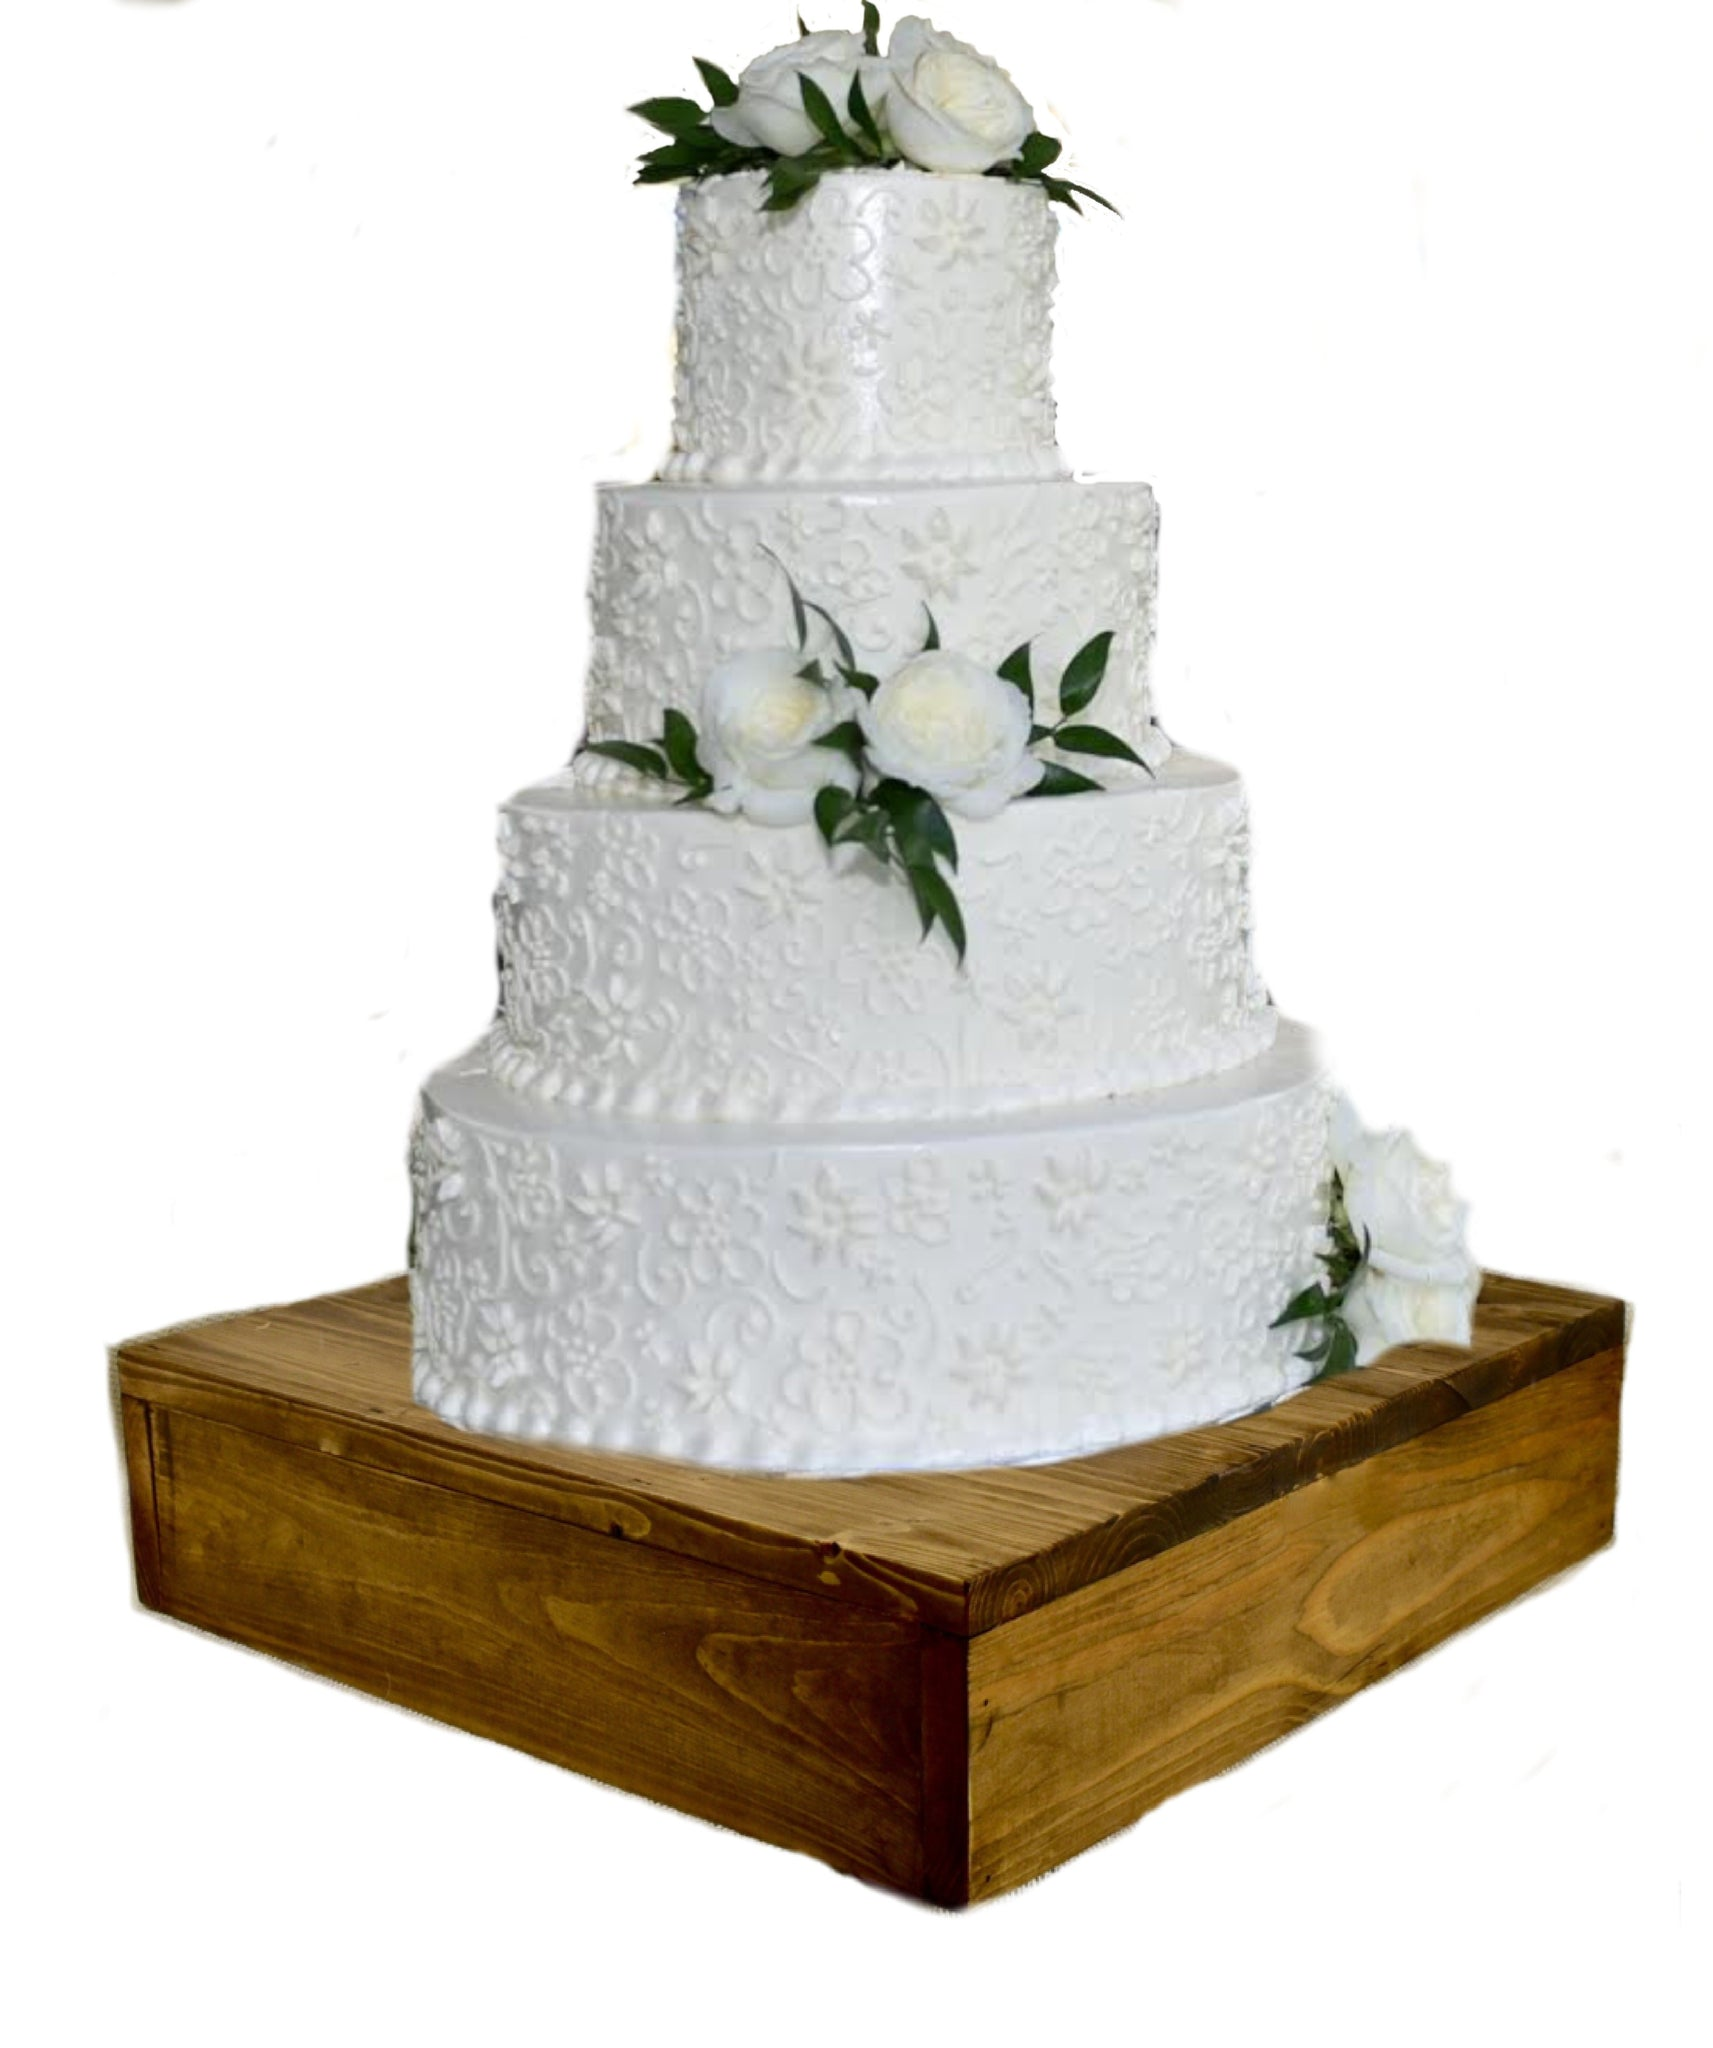 16 Inch Square Cake Stand Wedding Cake Stand Square Platform Or Display Stand